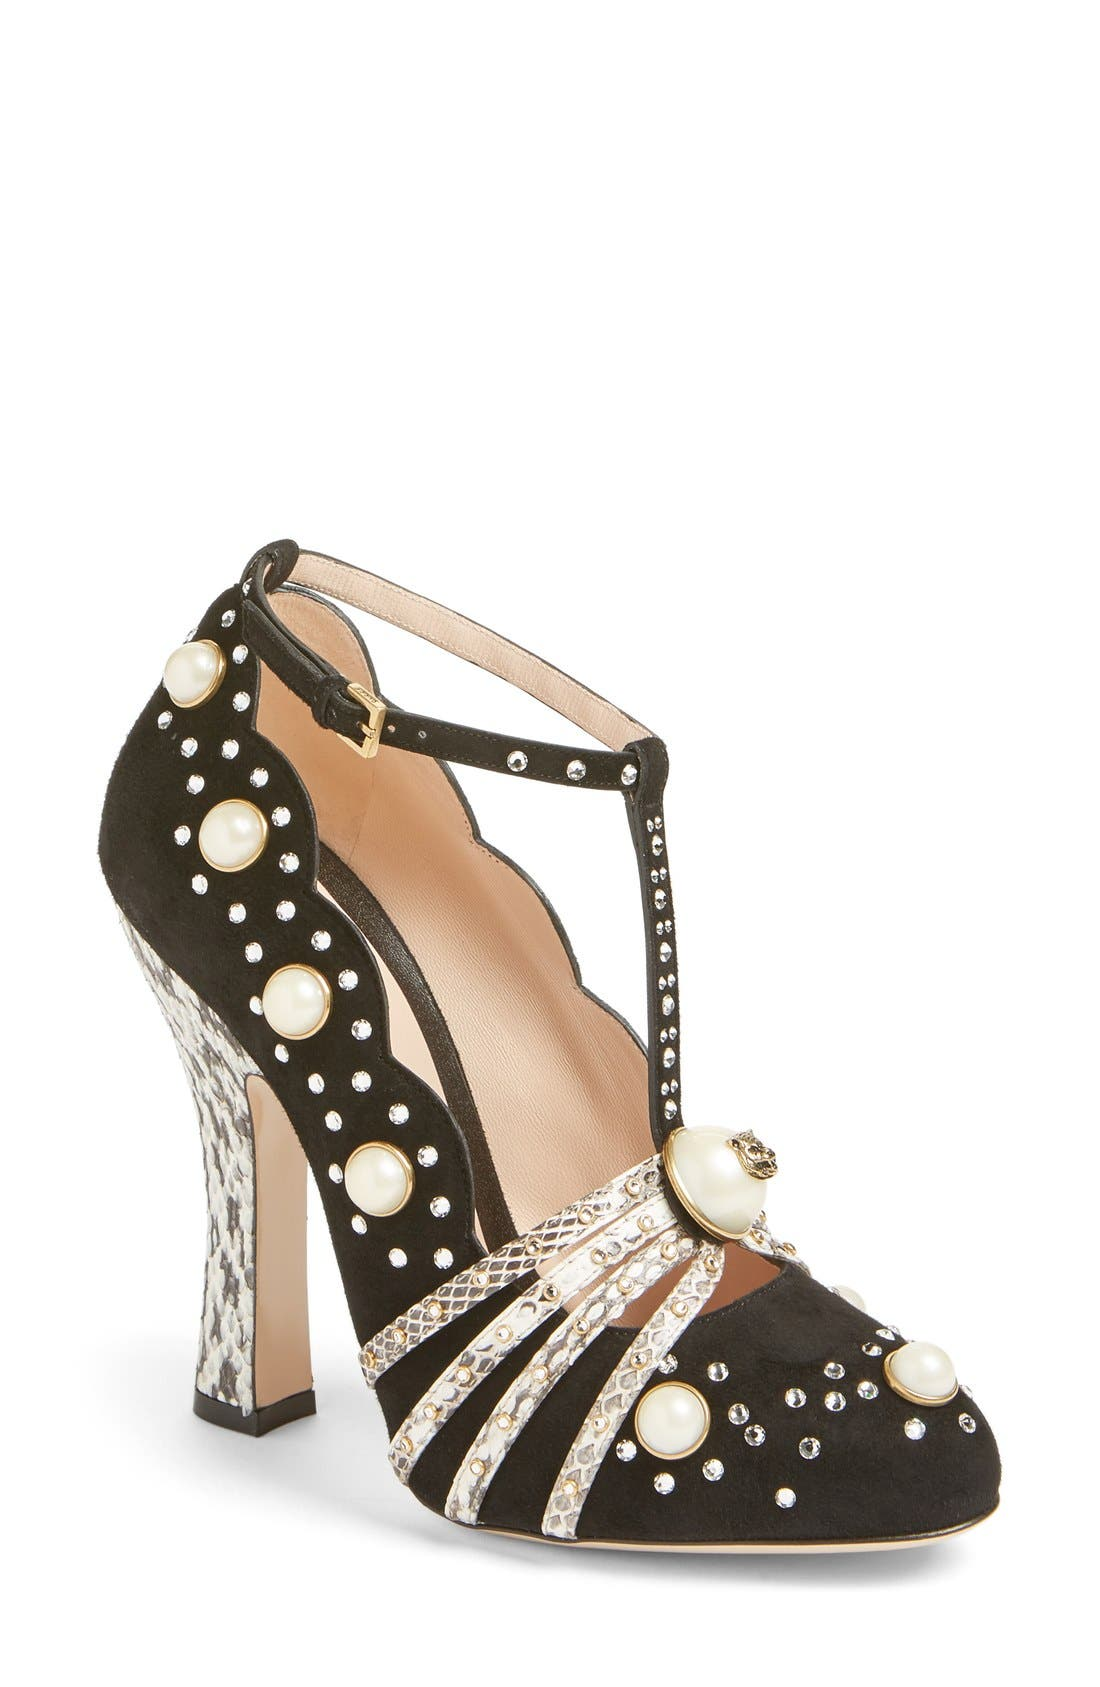 Alternate Image 1 Selected - Gucci Ofelia Pearly Crystal Embellished Pump (Women)